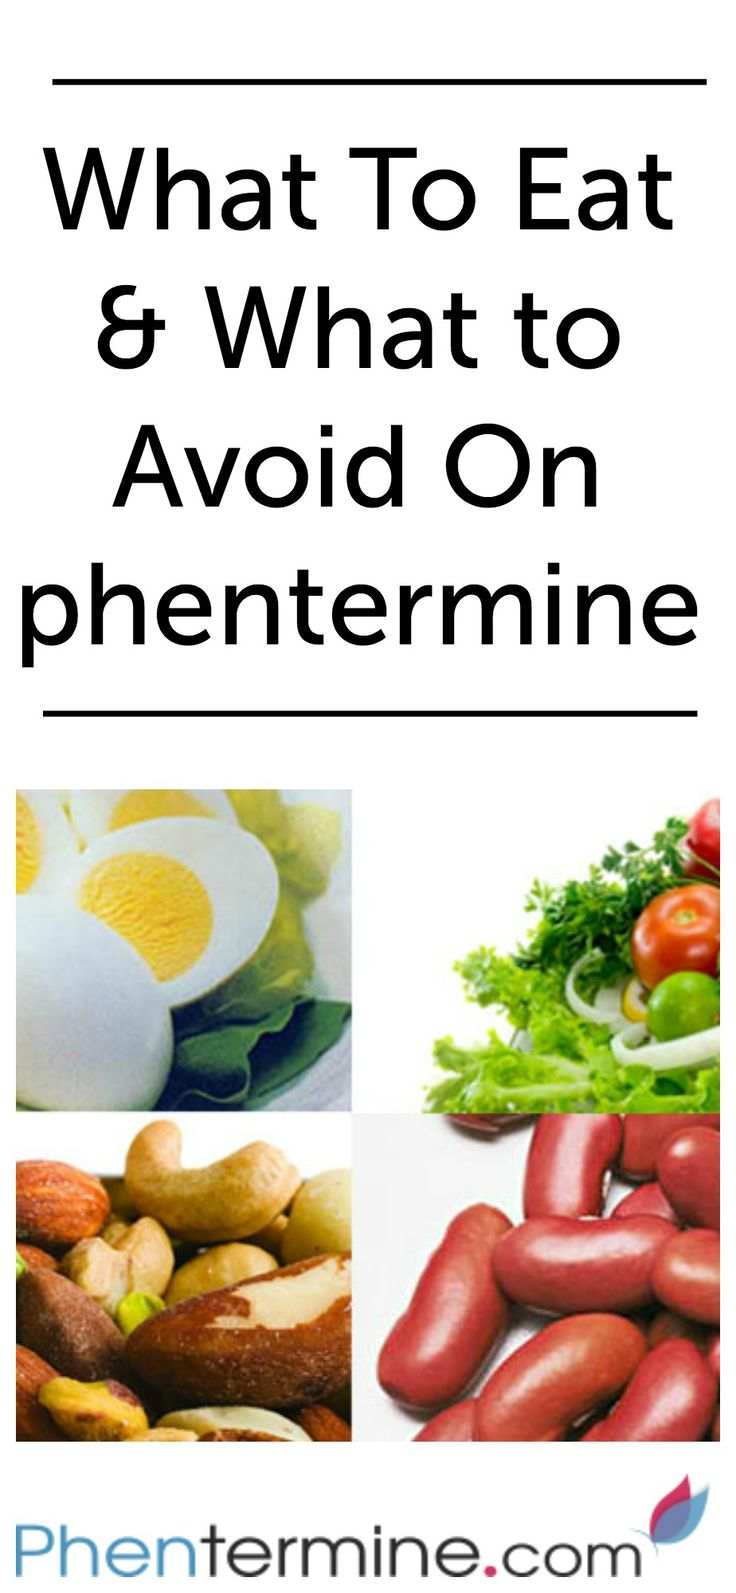 What to Eat While Taking Phentermine